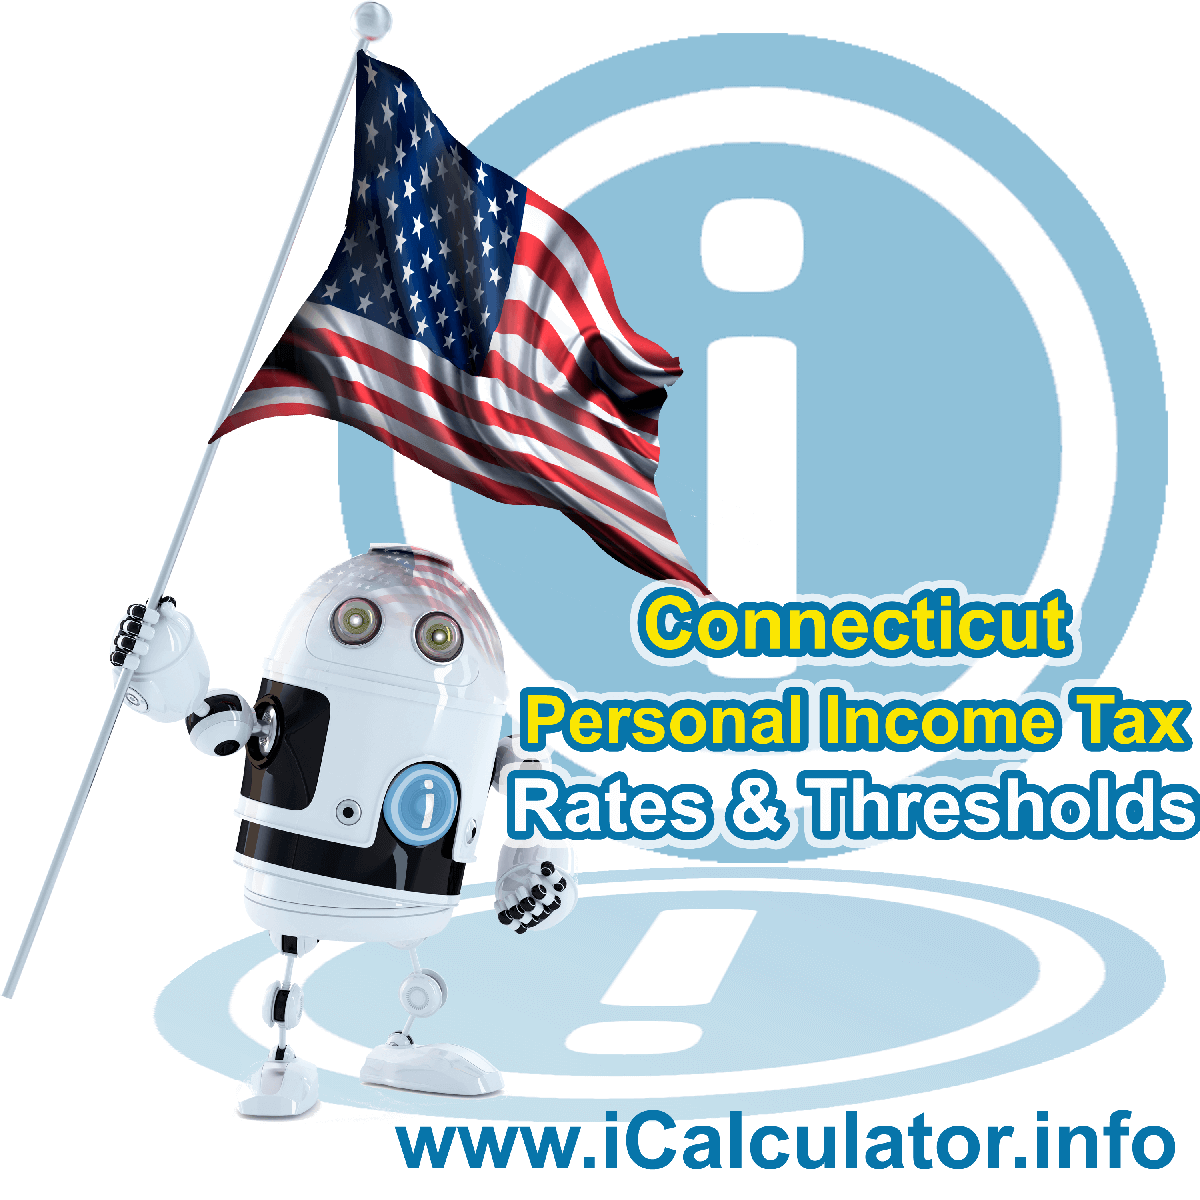 Connecticut State Tax Tables 2018. This image displays details of the Connecticut State Tax Tables for the 2018 tax return year which is provided in support of the 2018 US Tax Calculator